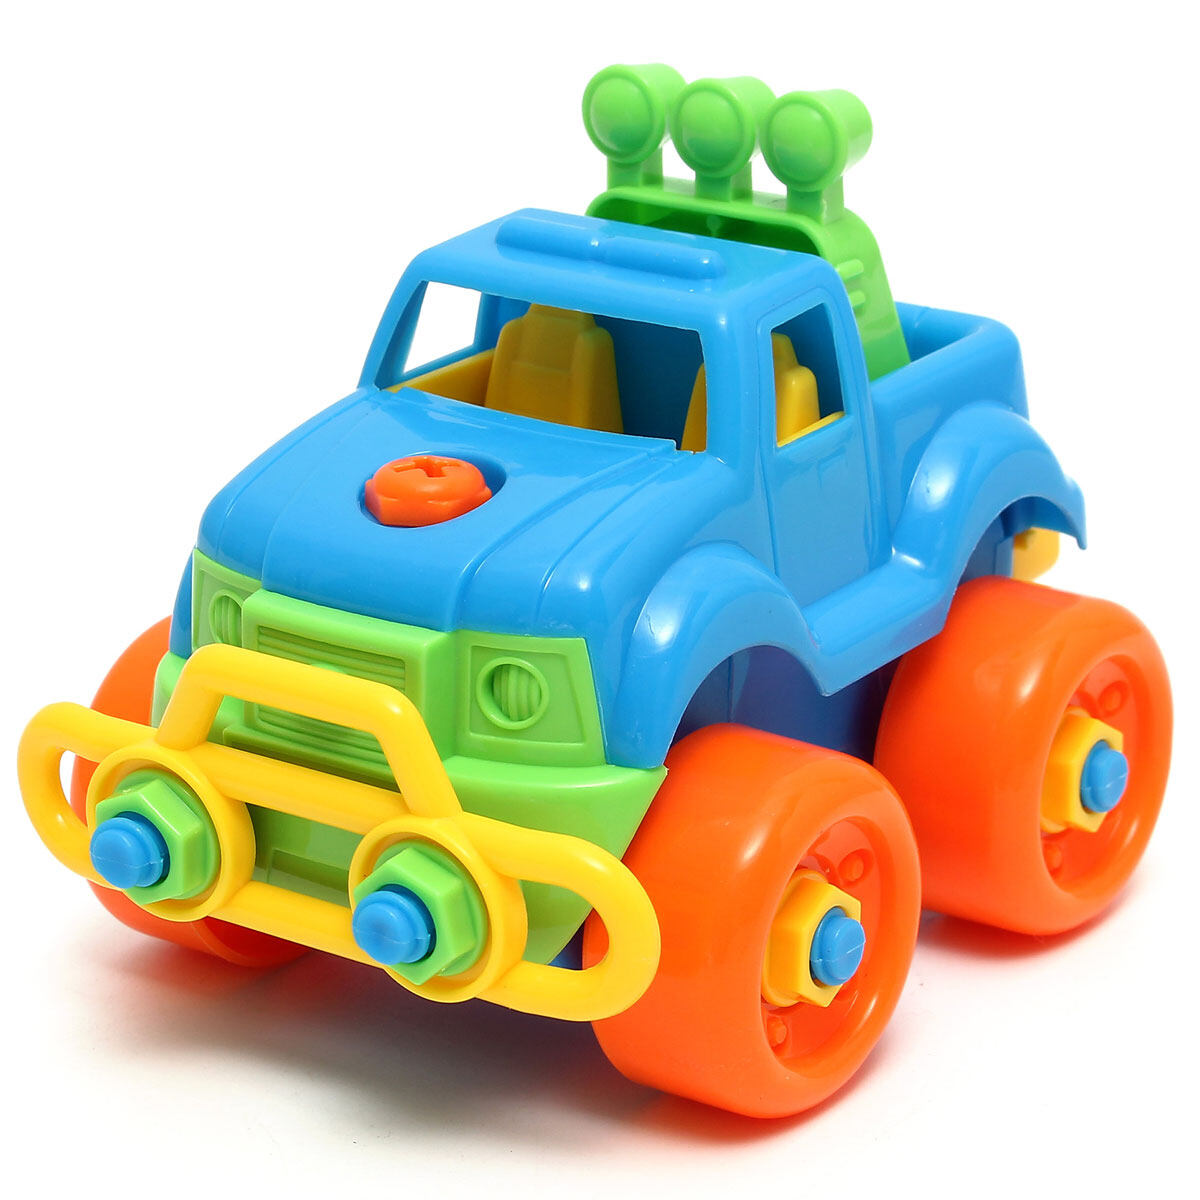 Kids Children Baby Boy Disassembly Assembly Classic Car Educational Play Toy New - Intl By Freebang.